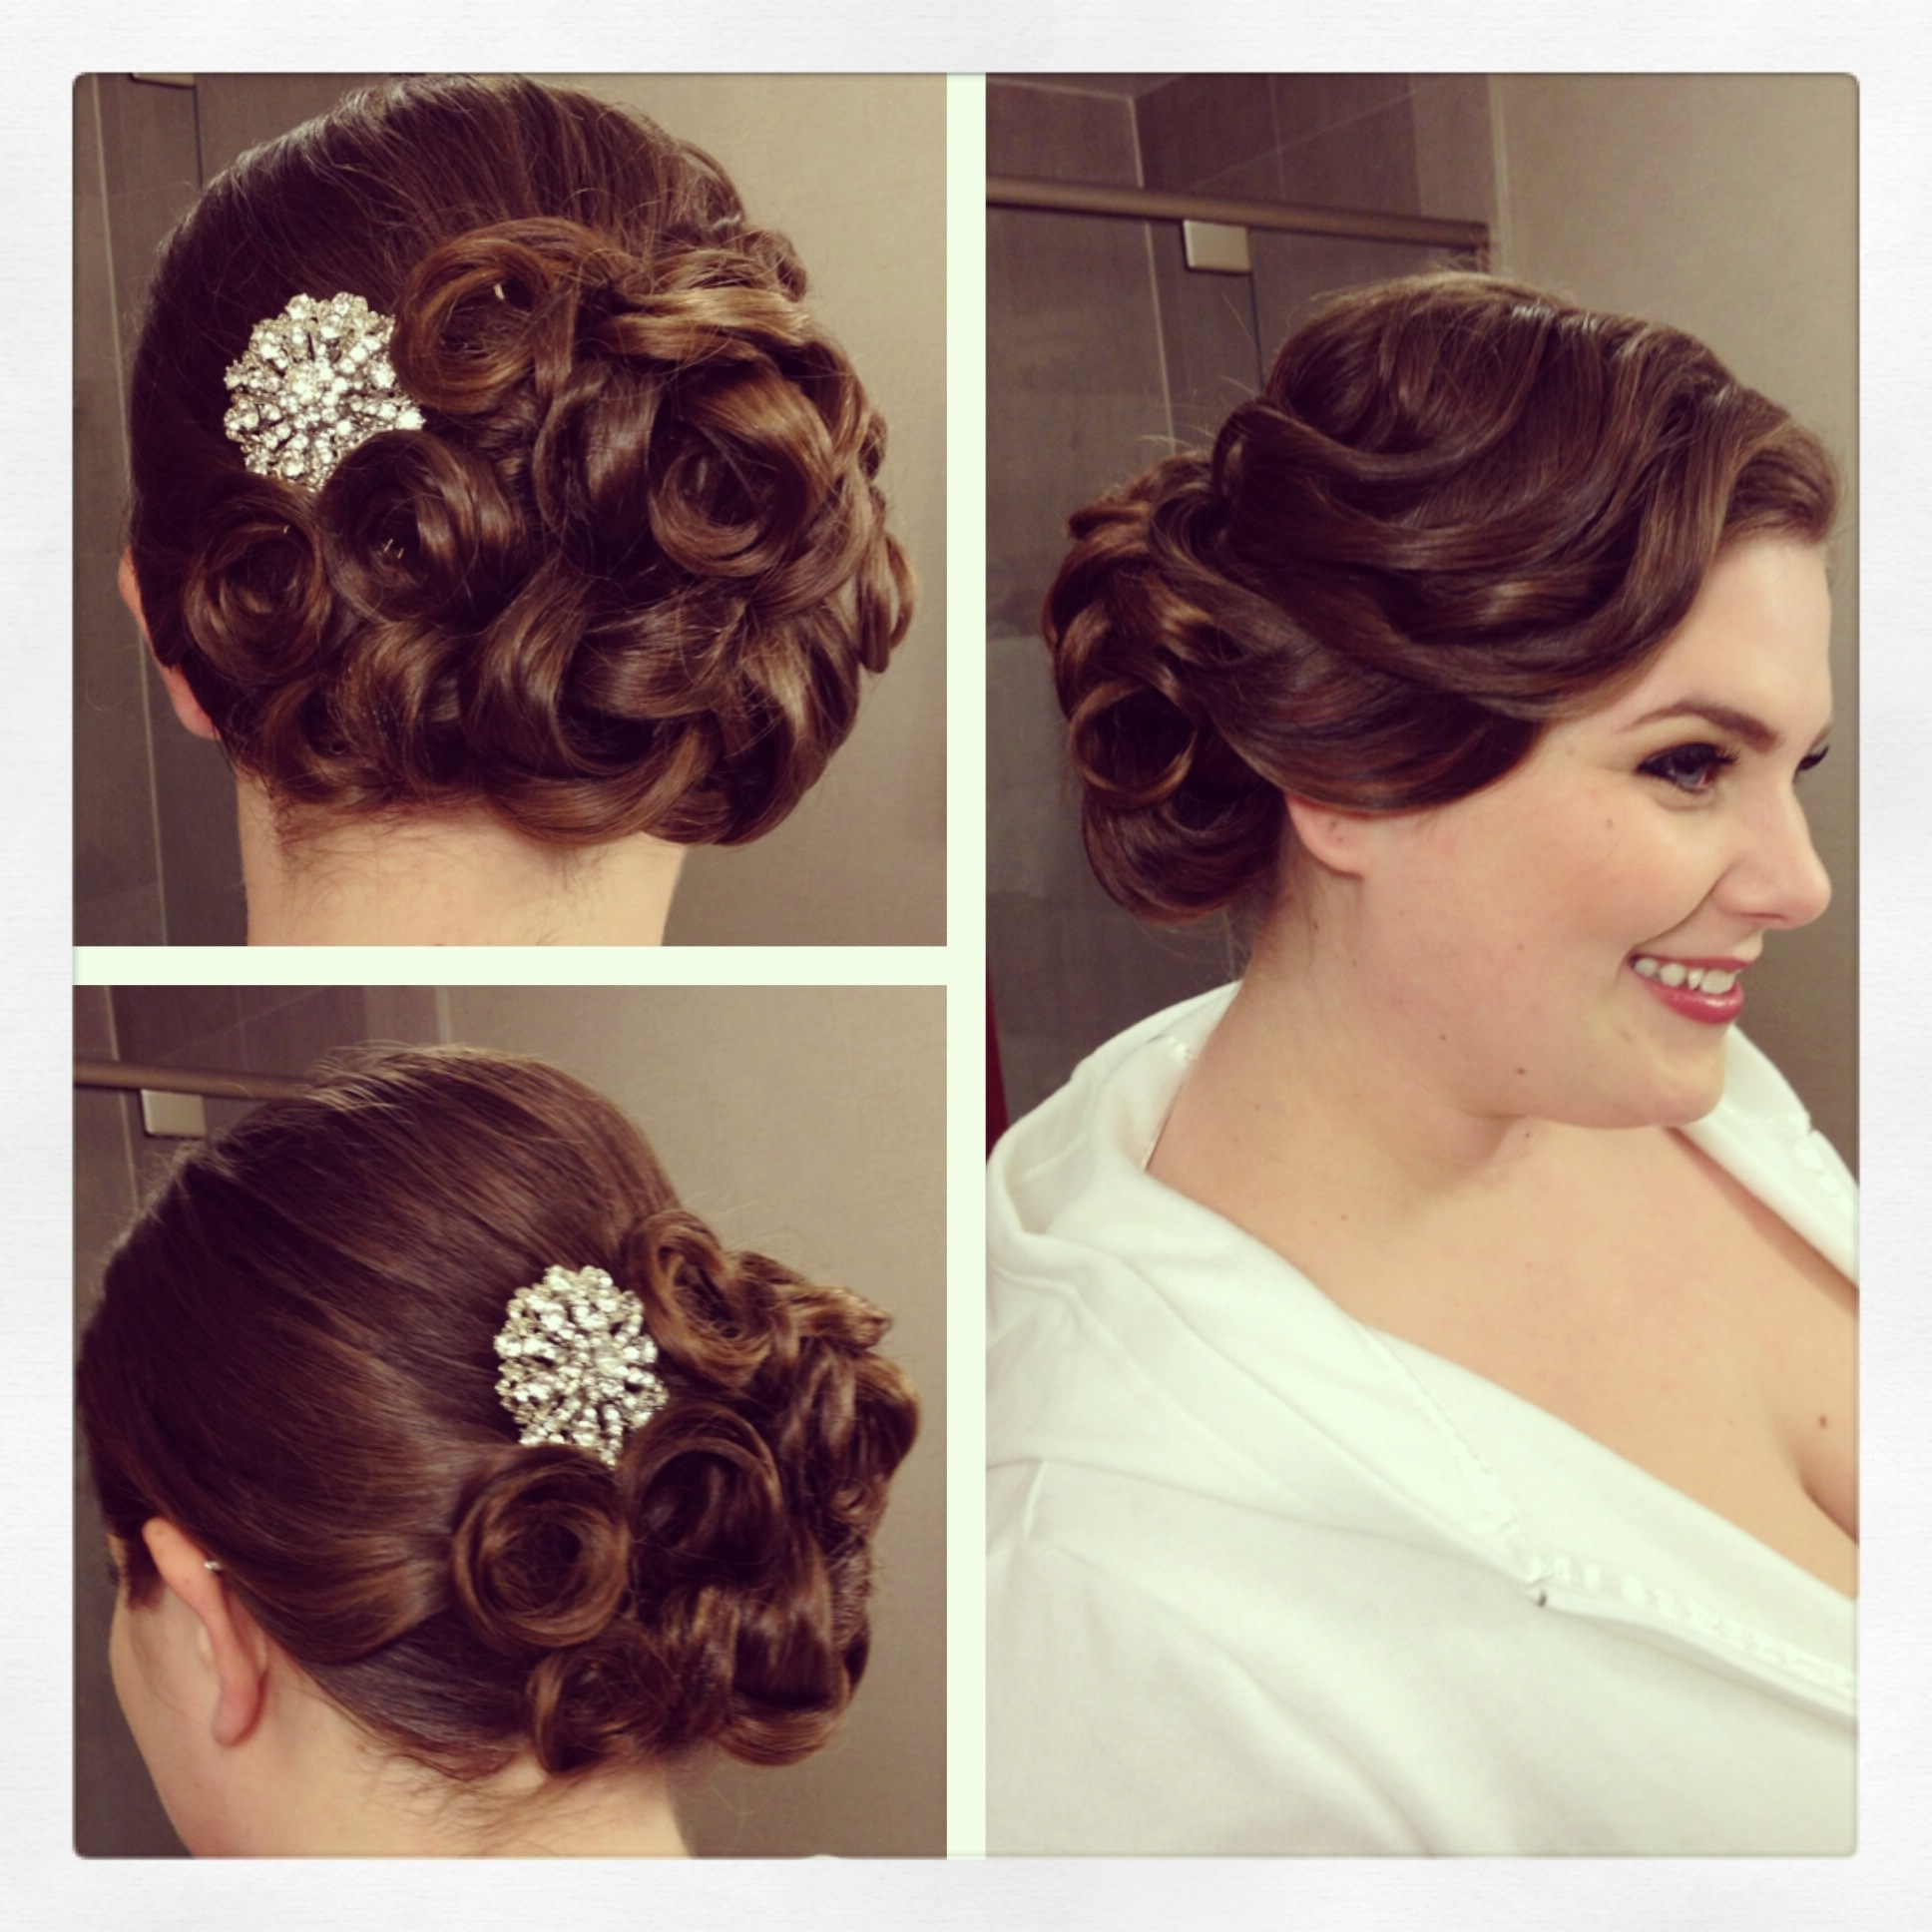 Awesome Pin Up Hairstyles For Weddings Contemporary – Styles & Ideas In 2017 Upstyles Wedding Haircuts (View 10 of 15)